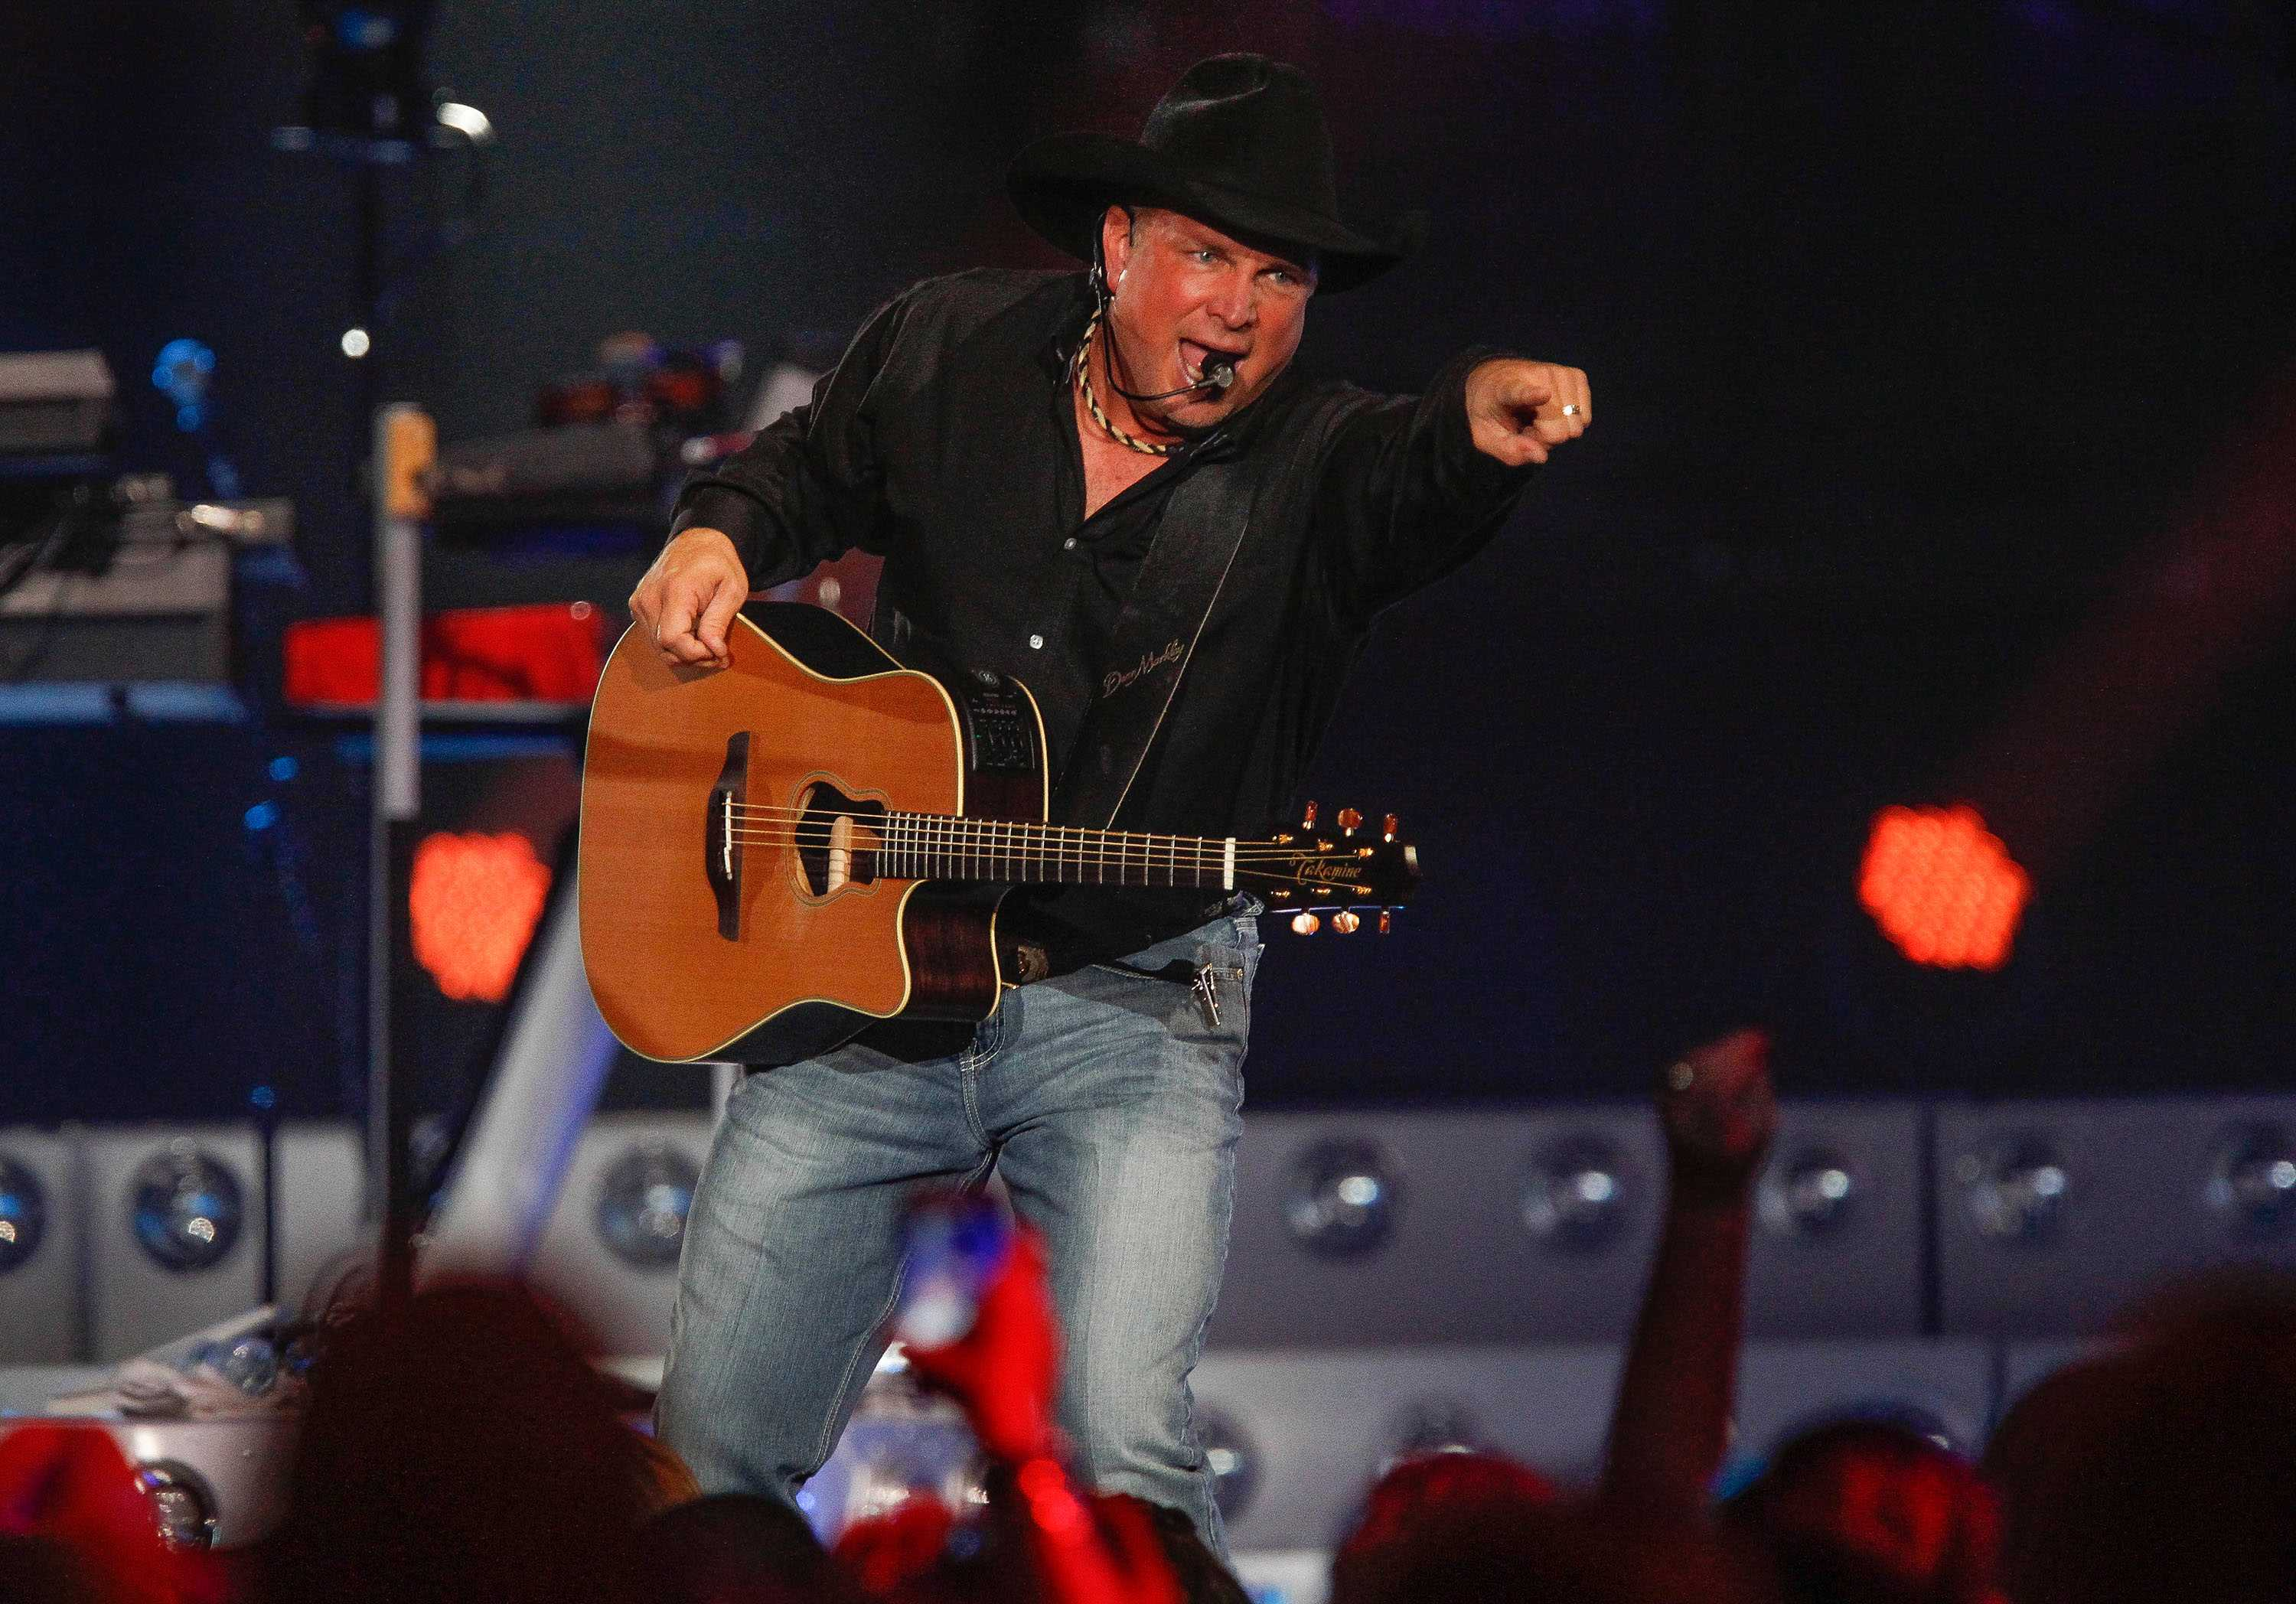 Country music superstar Garth Brooks performs at the Valley View Casino Center on Nov. 5, 2015 in San Diego, Calif. Tickets for Brook's Champaign show were in high demand, causing the ticket server to crash.